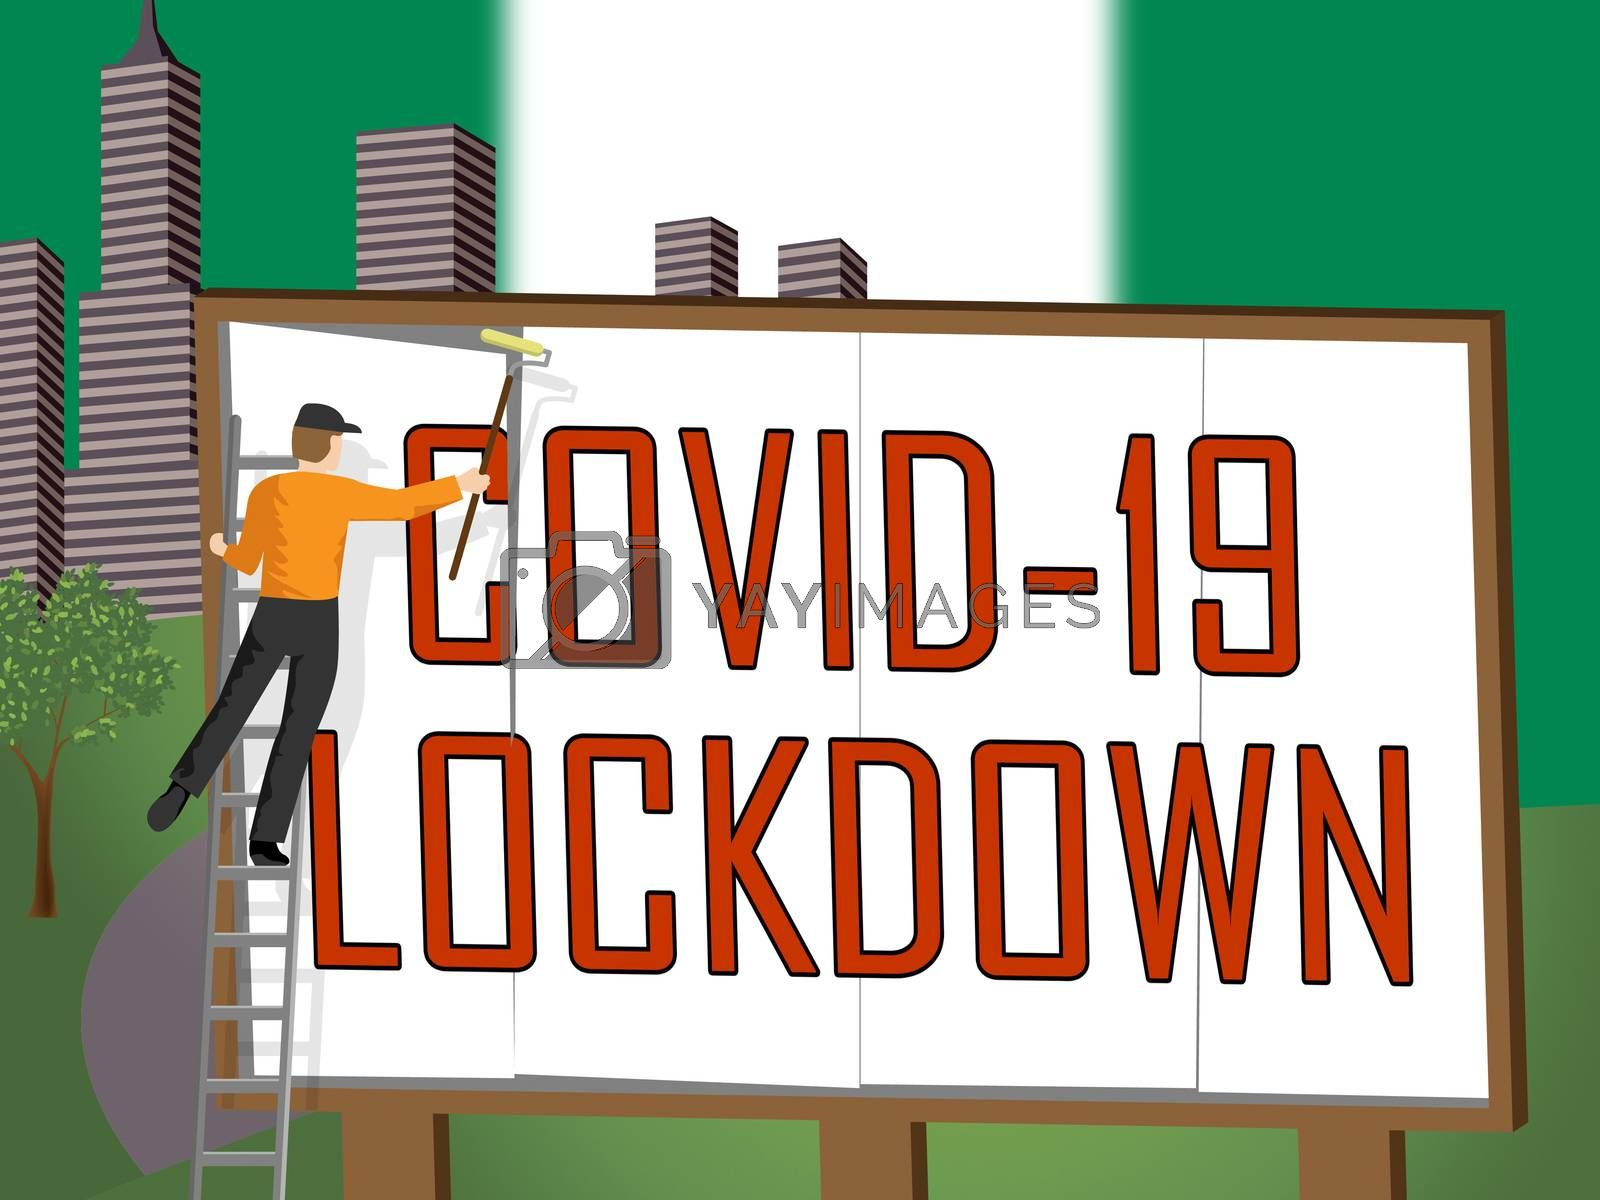 Nigeria lockdown against coronavirus covid-19. Nigerian stay home order to enforce self isolation and stop infection - 3d Illustration